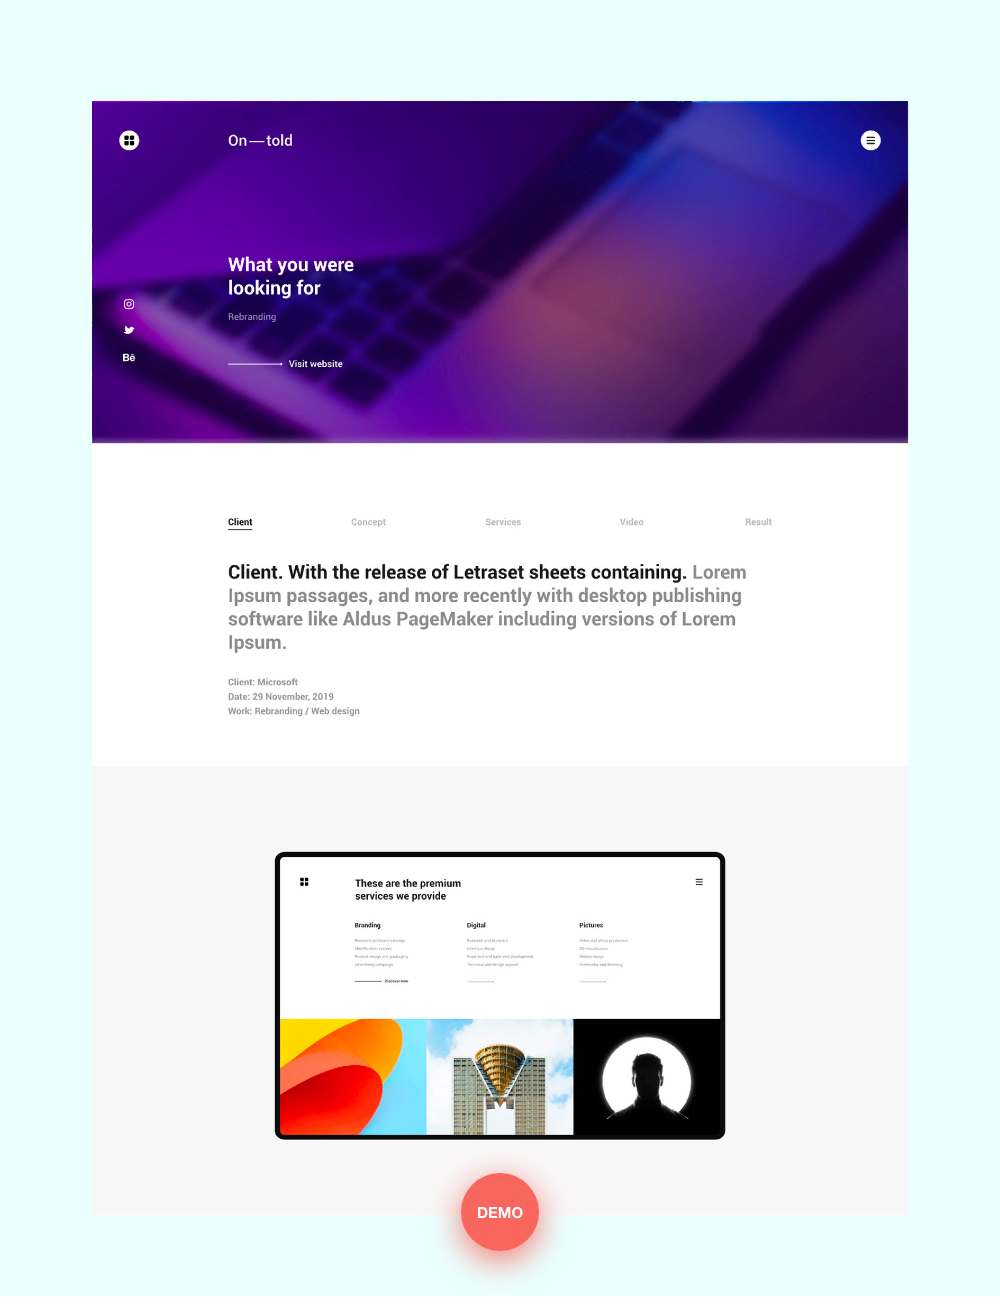 Ontold | Creative Agency Drupal Theme for the Digital Age - 4